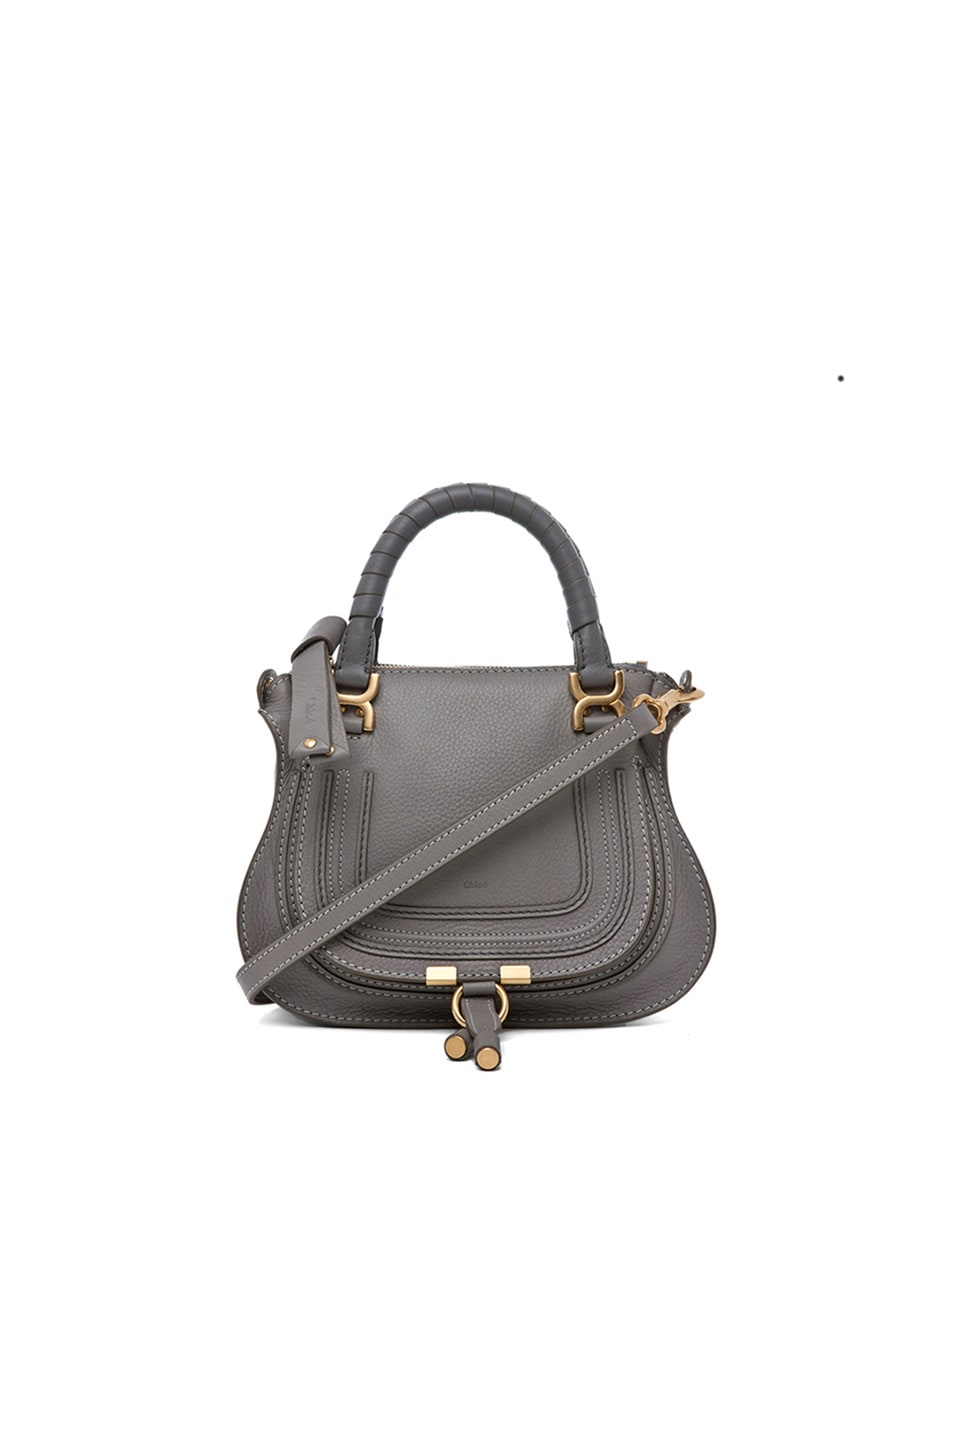 Image 1 of Chloe Mini Marcie Bag in Cashmere Grey